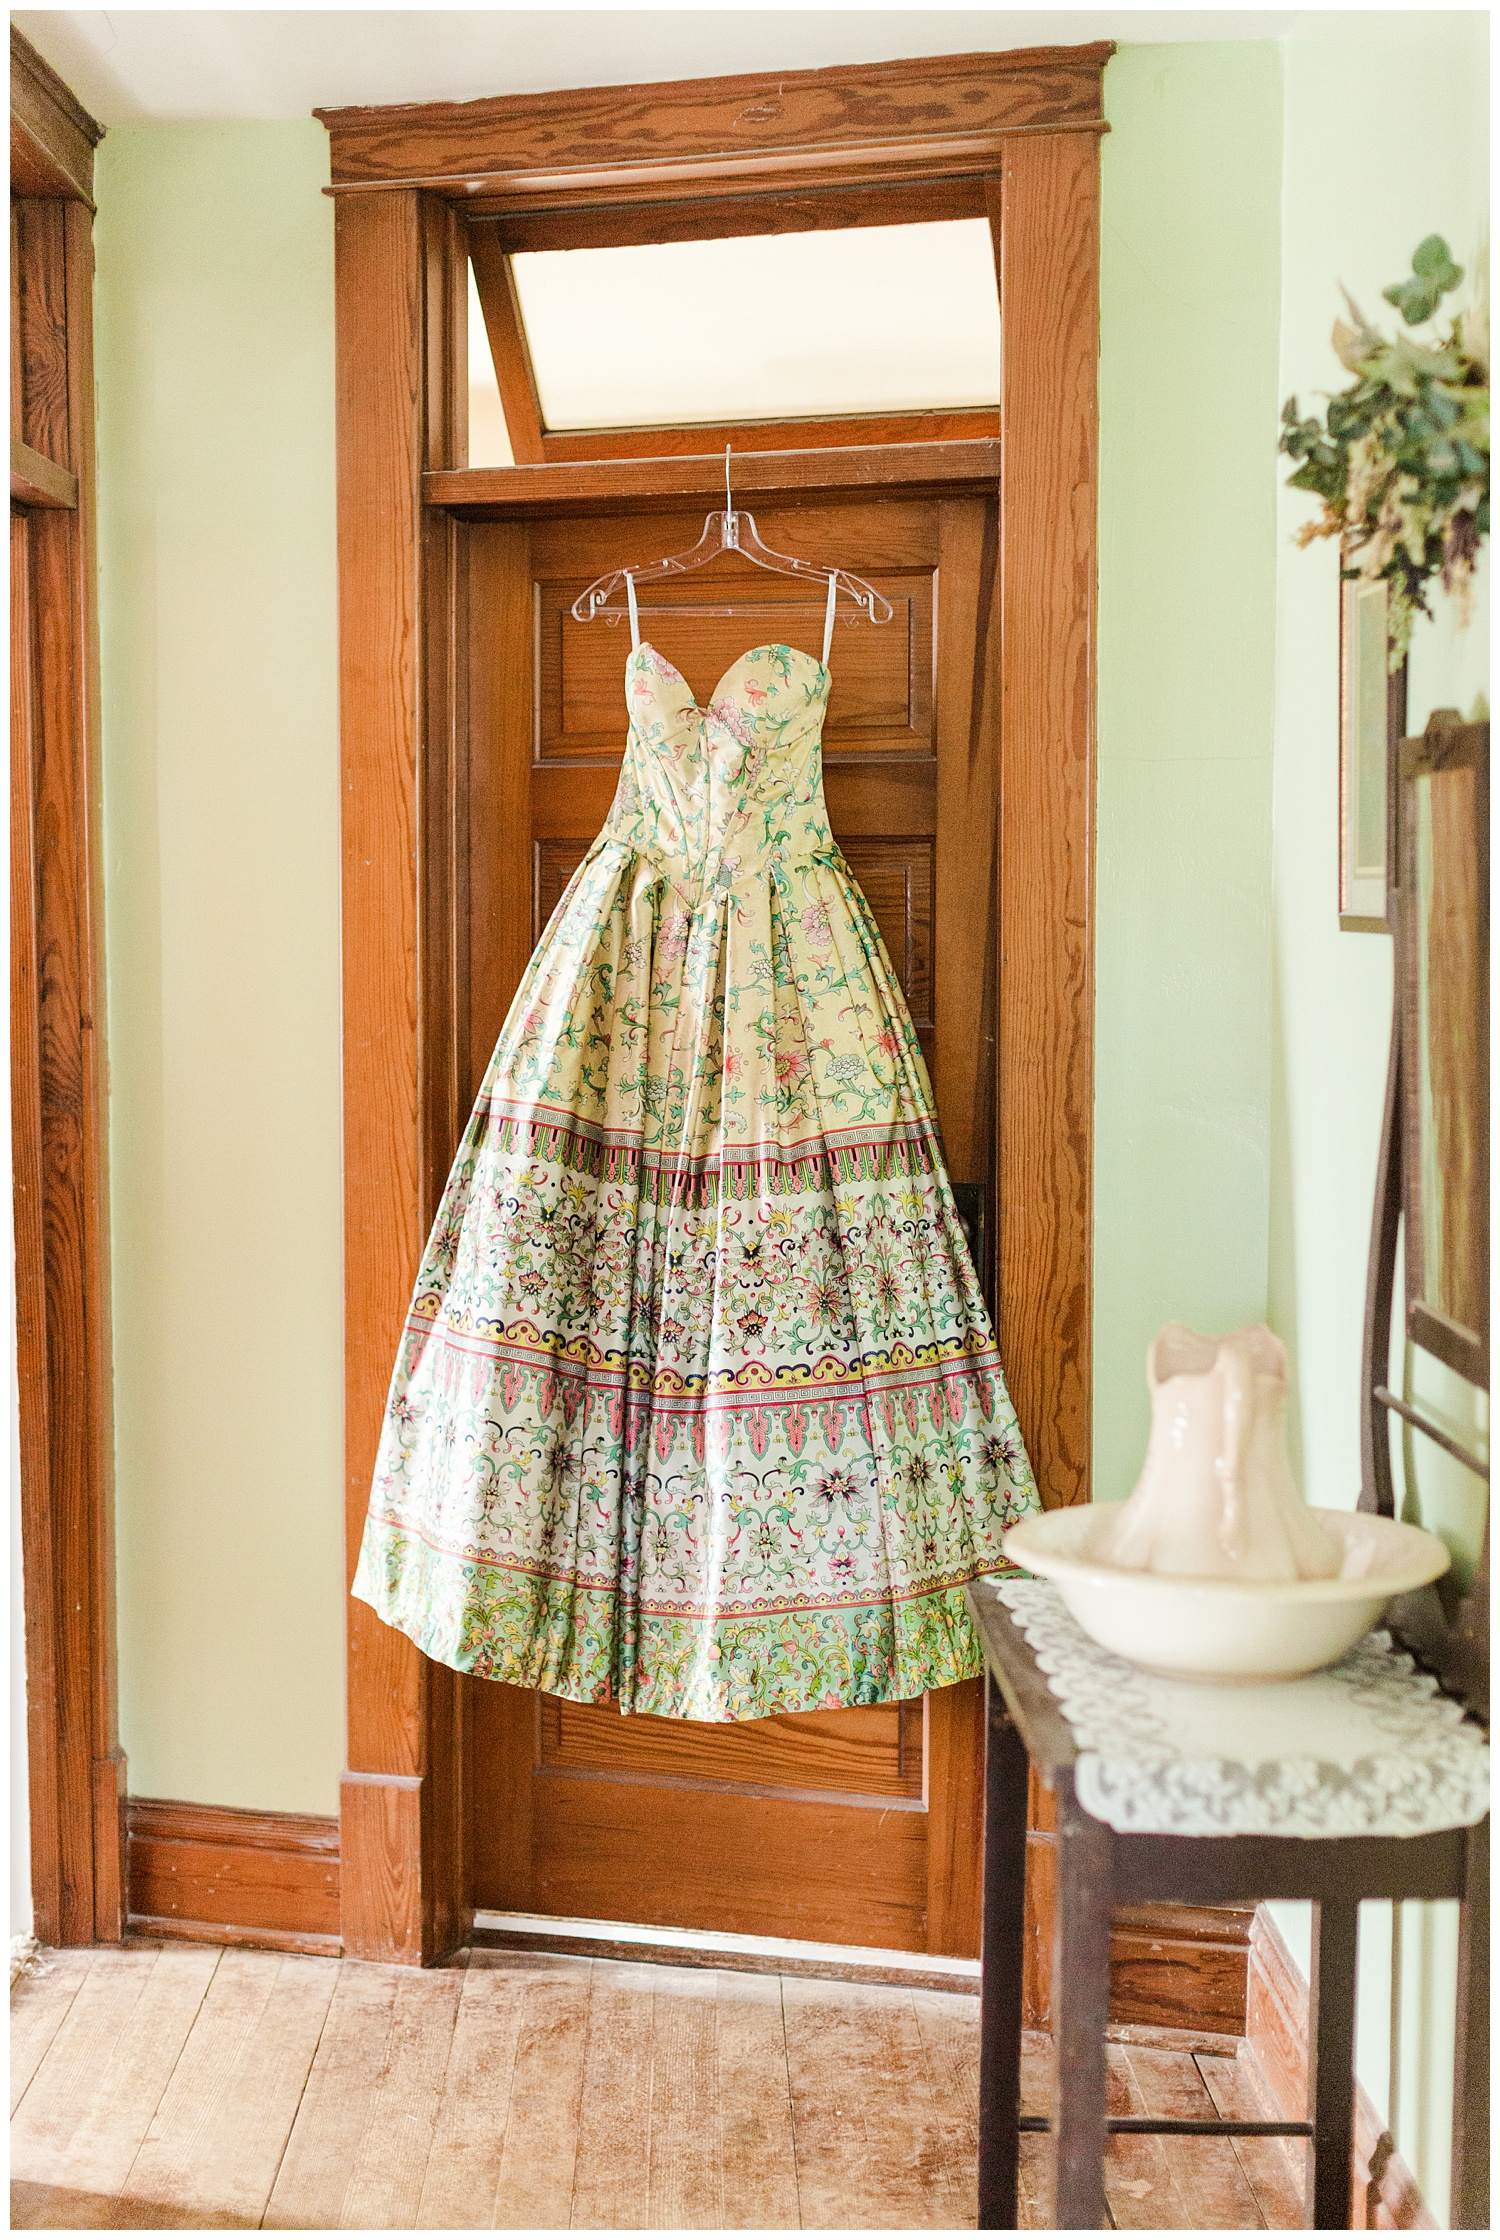 Michaela's vintage style prom dress hangs from a wooden door in an 115 year old home | CB Studio